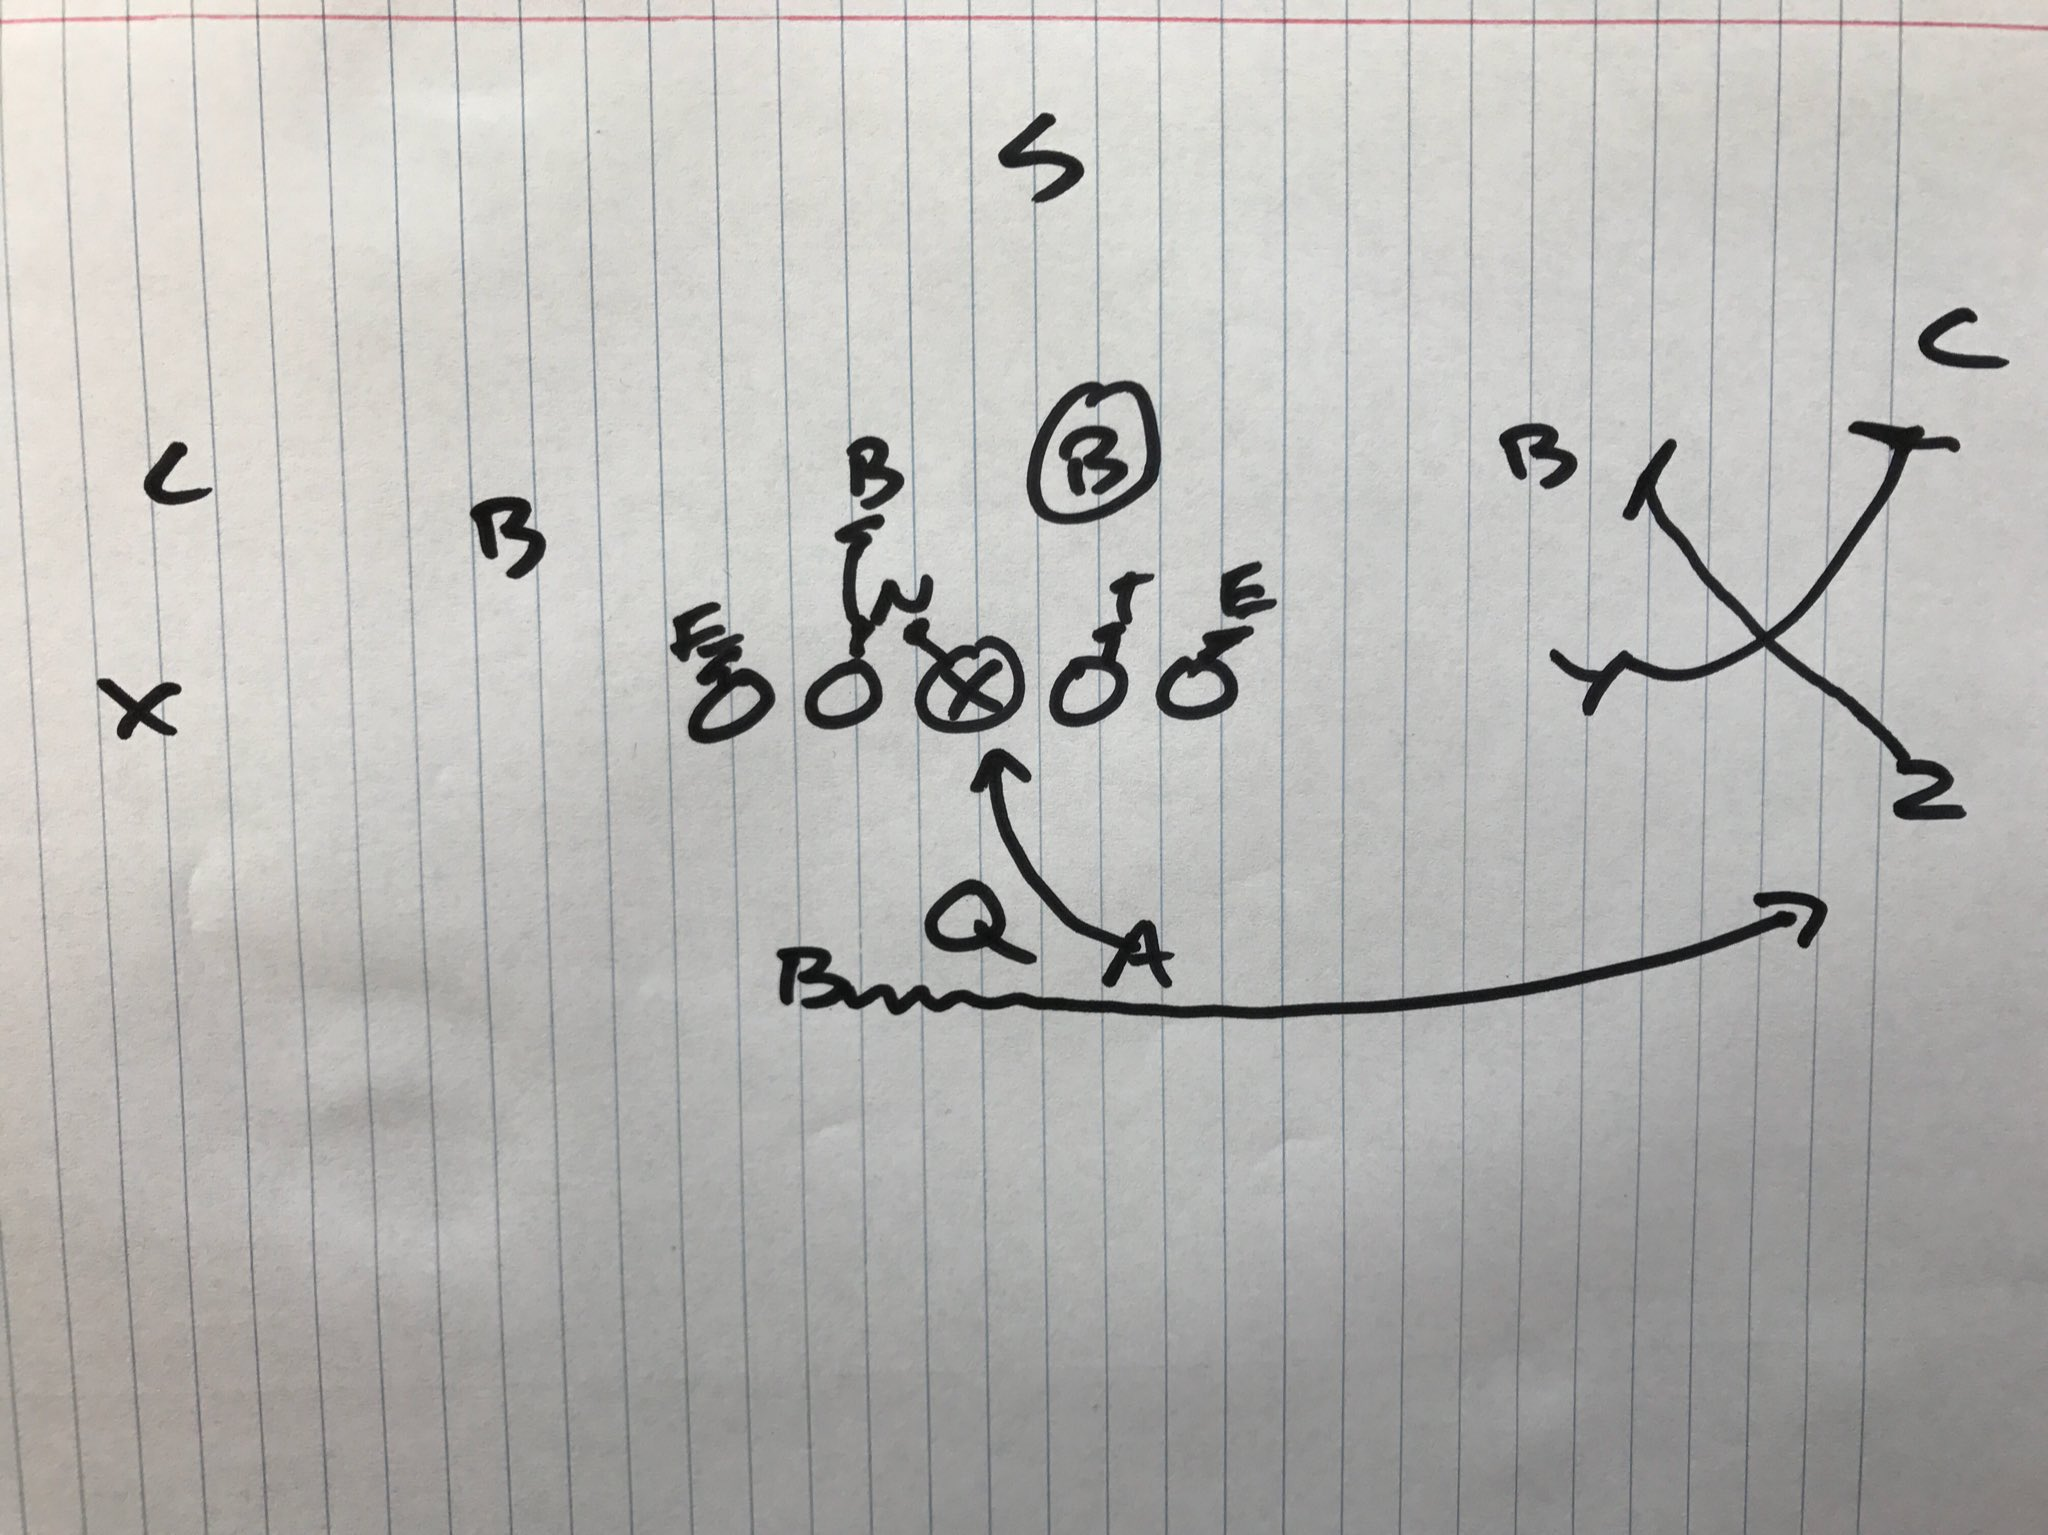 #2BackTuesday RPO read LB and throw bubble if LB stays or attacks LOS; hand-off if he goes with motion https://t.co/LN1Z6500lf